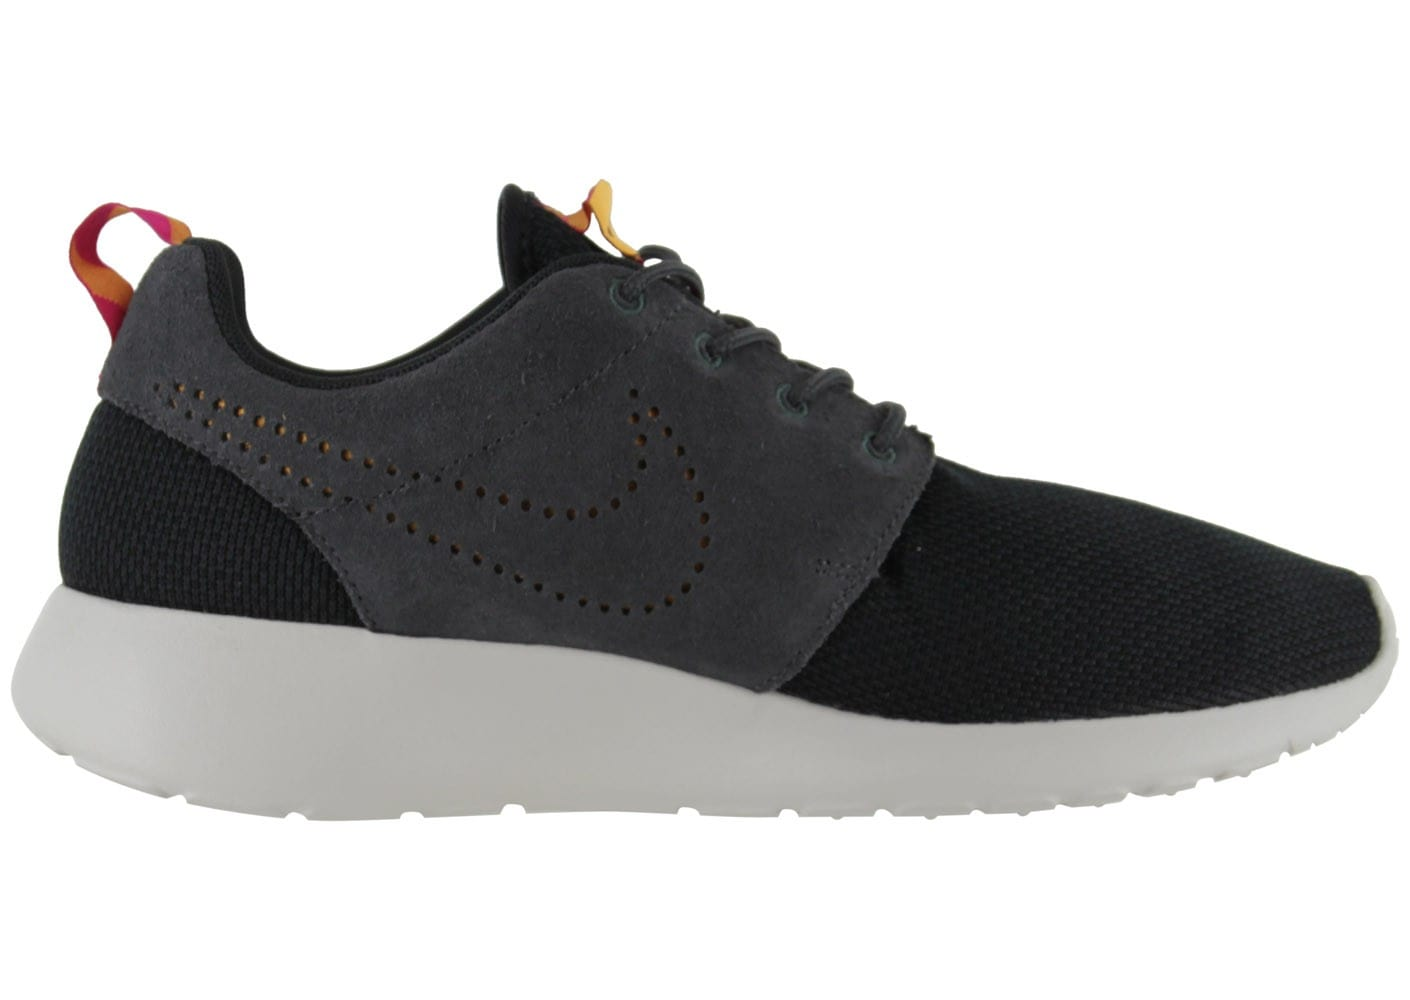 nike roshe run noire chaussures homme chausport. Black Bedroom Furniture Sets. Home Design Ideas